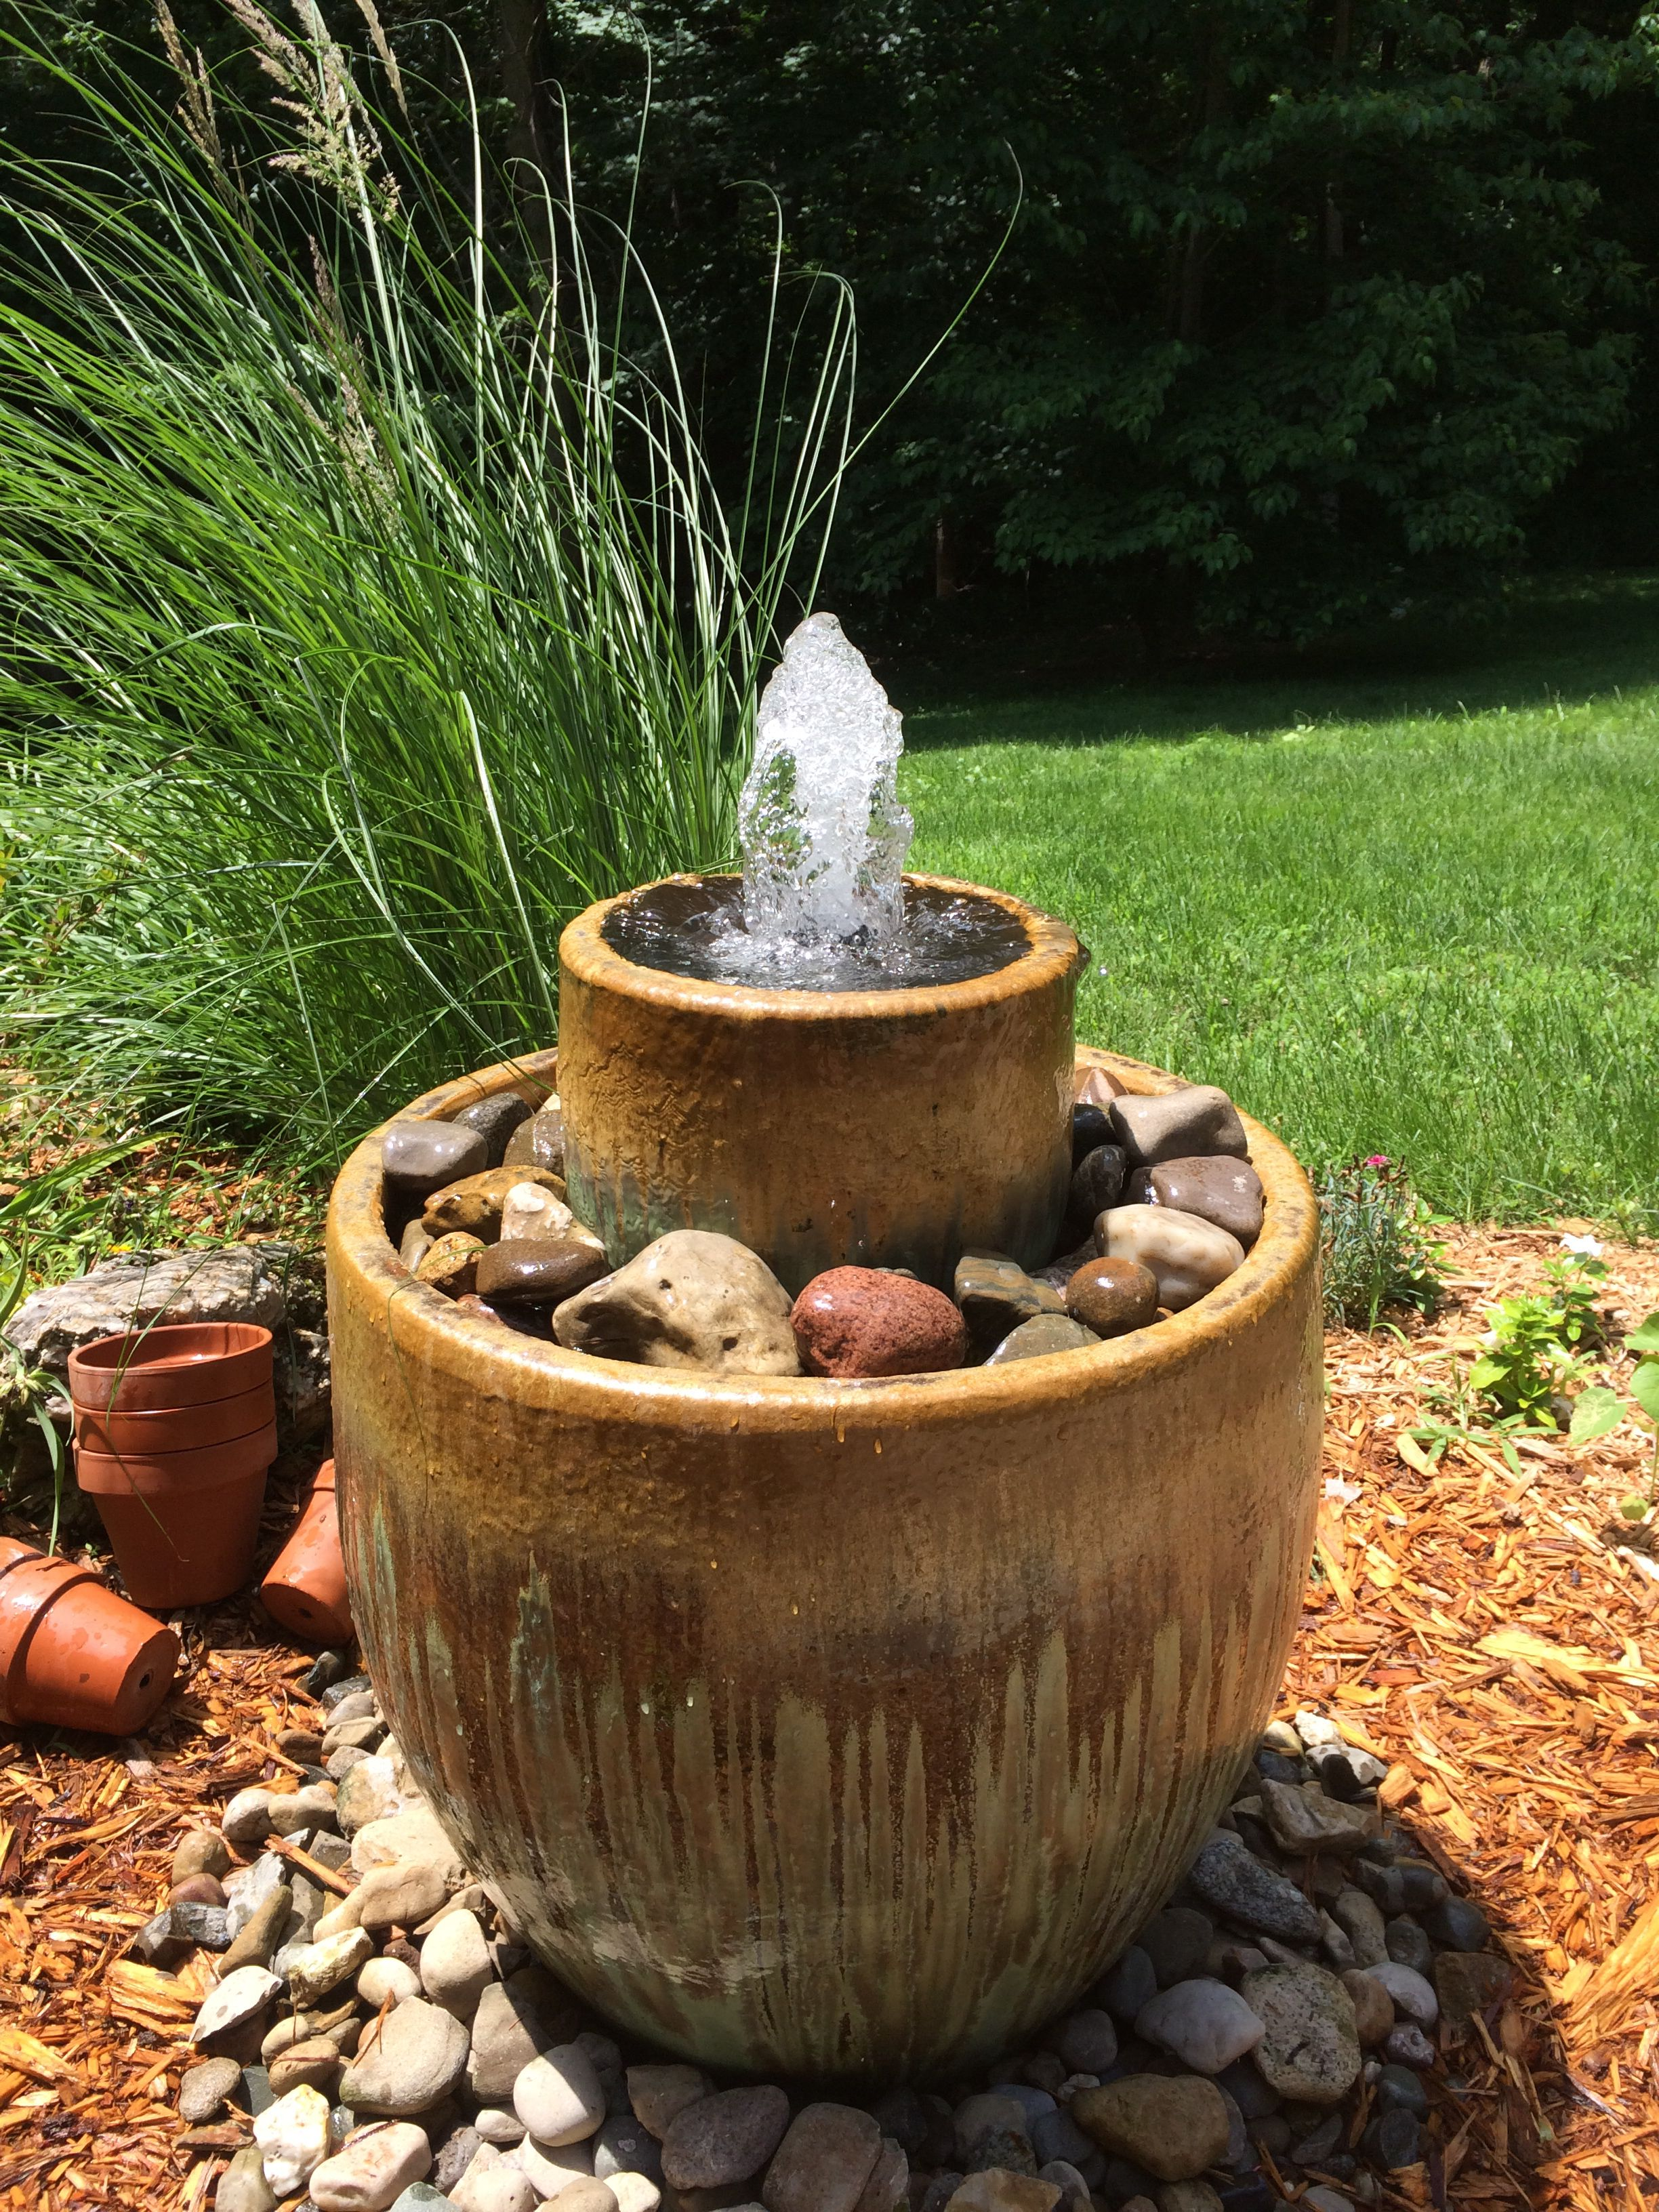 Diy Water Feature Supplies Include Garden Pump Tubing Rural King Sealant Ace Hardware Pots Walm Solar Fountain Diy Garden Fountains Diy Solar Fountain